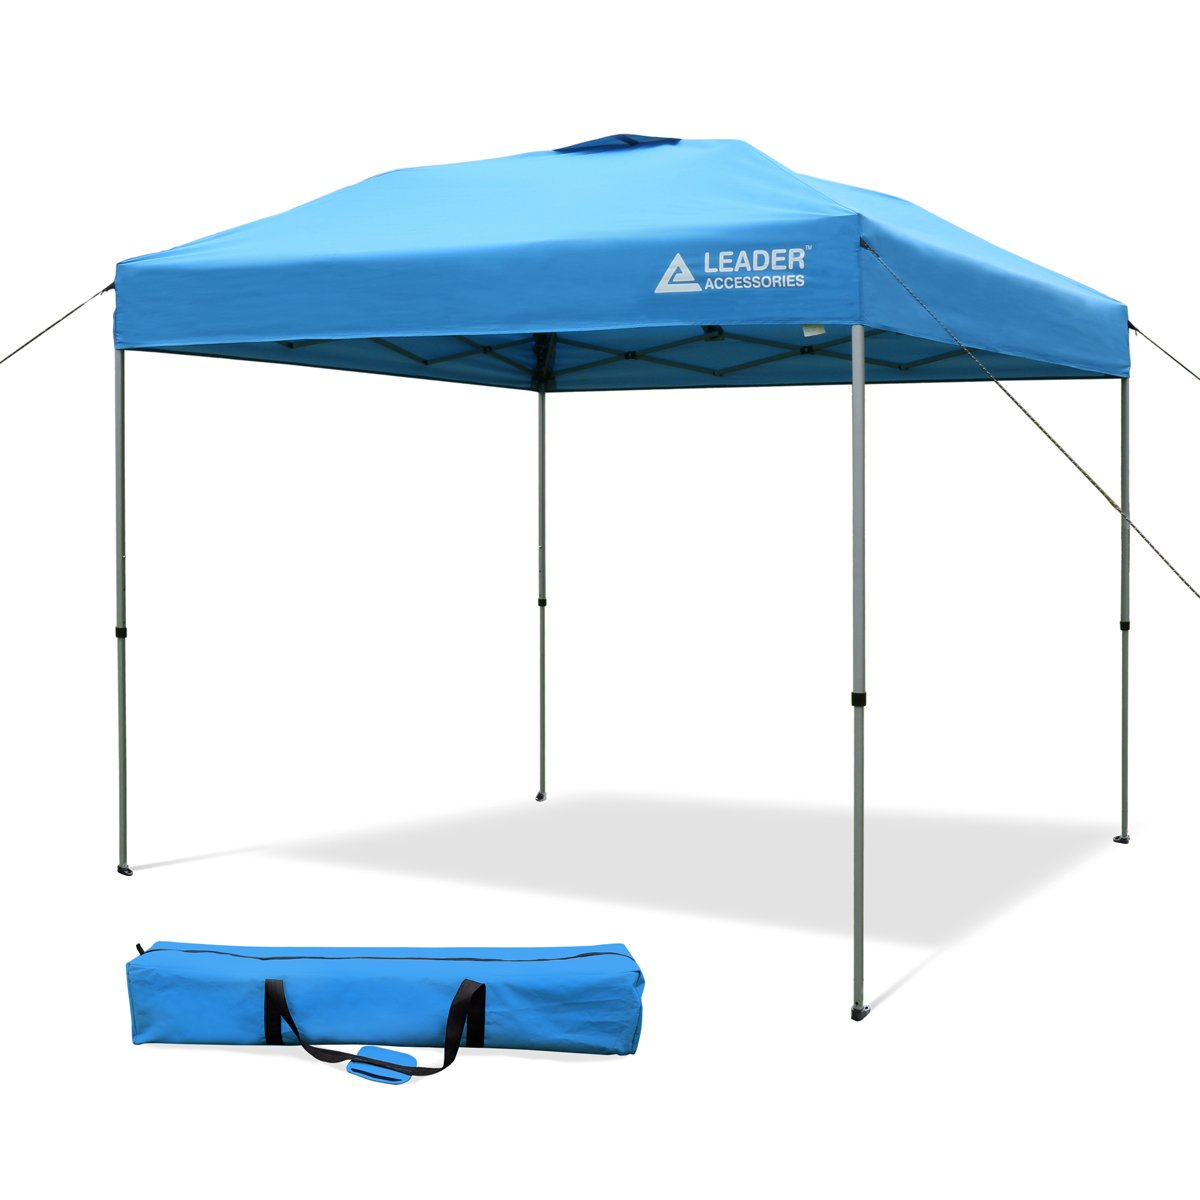 Leader Accessories 8' x 8' Straight Wall Instant Canopy with Carry Bag 8' x 8' Straight Wall Instant Canopy with Carry Bag (Blue)